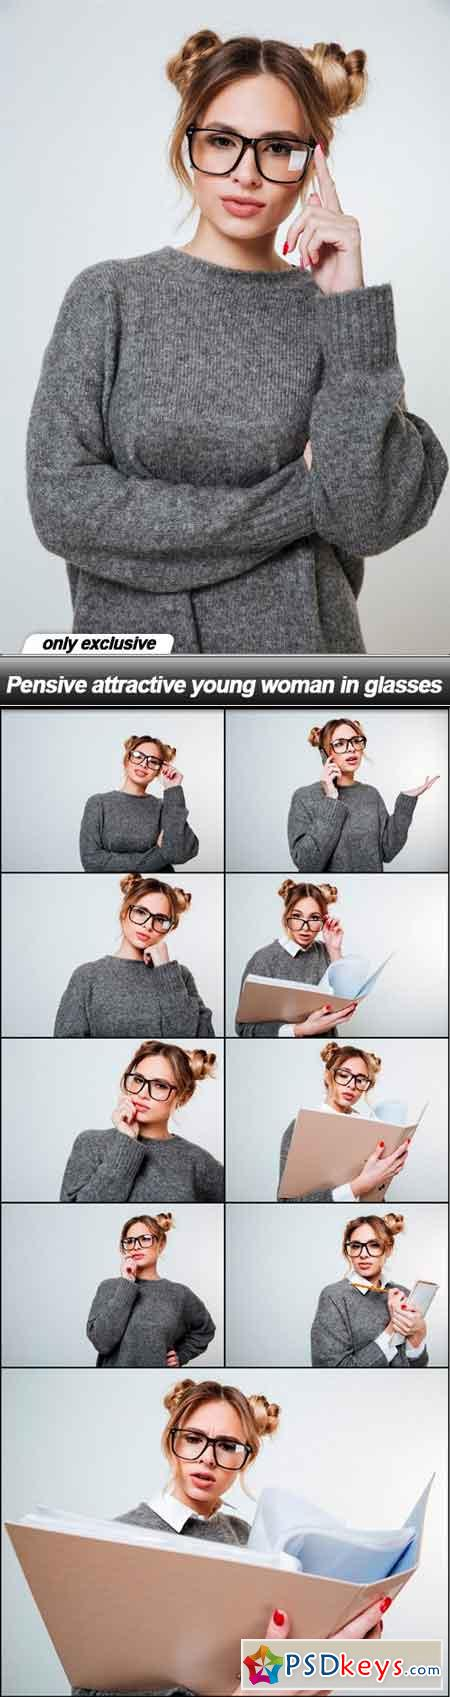 Pensive attractive young woman in glasses - 10 UHQ JPEG